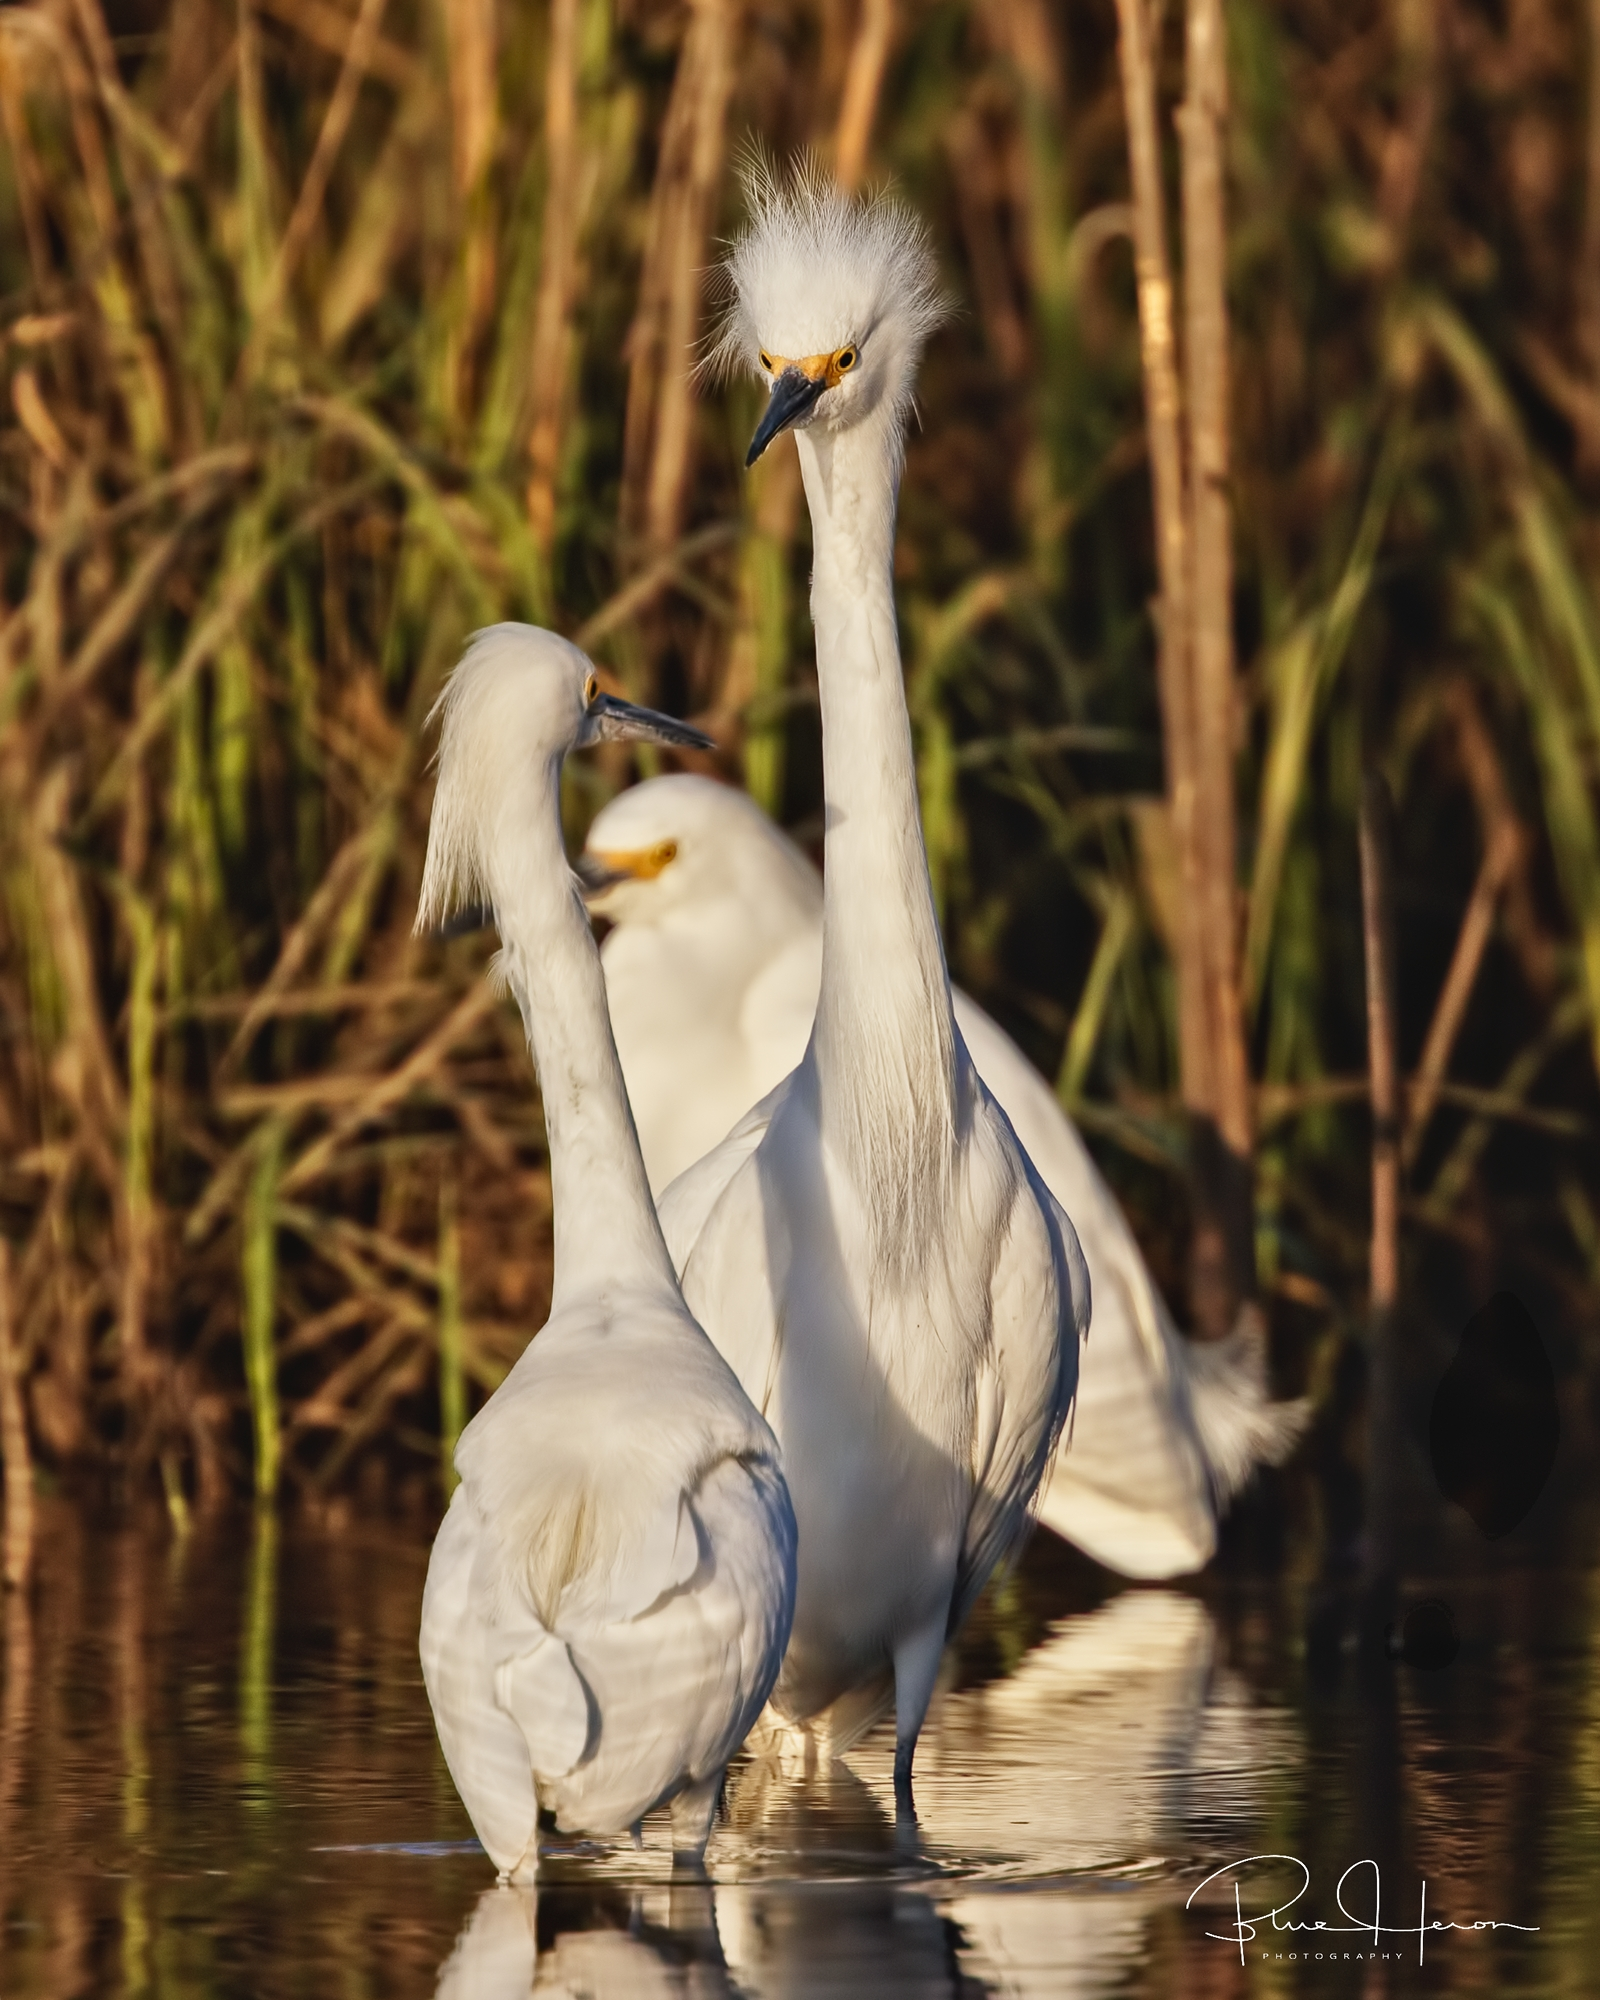 Today things were different...they seemed very short tempered if another Egret approached!